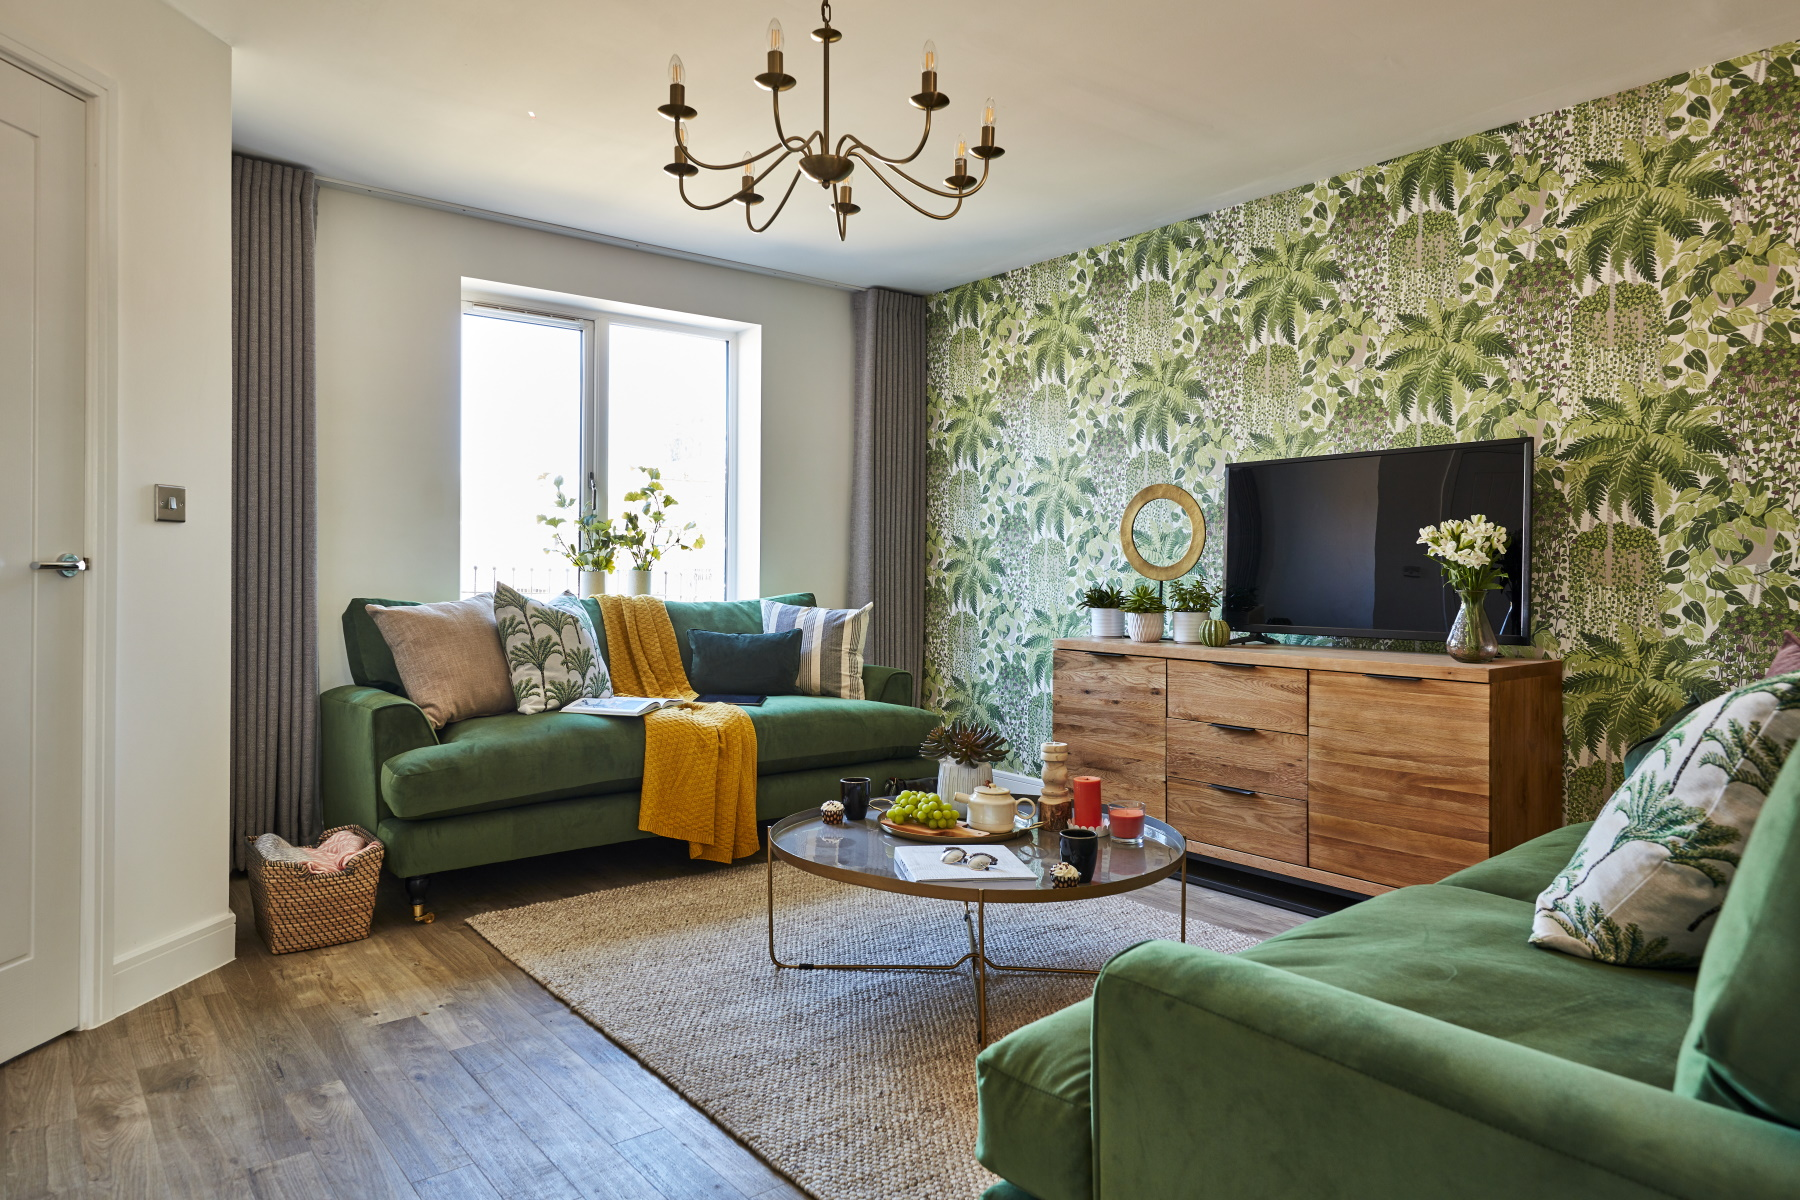 TW Exeter - Mayfield Gardens - Byford example living room